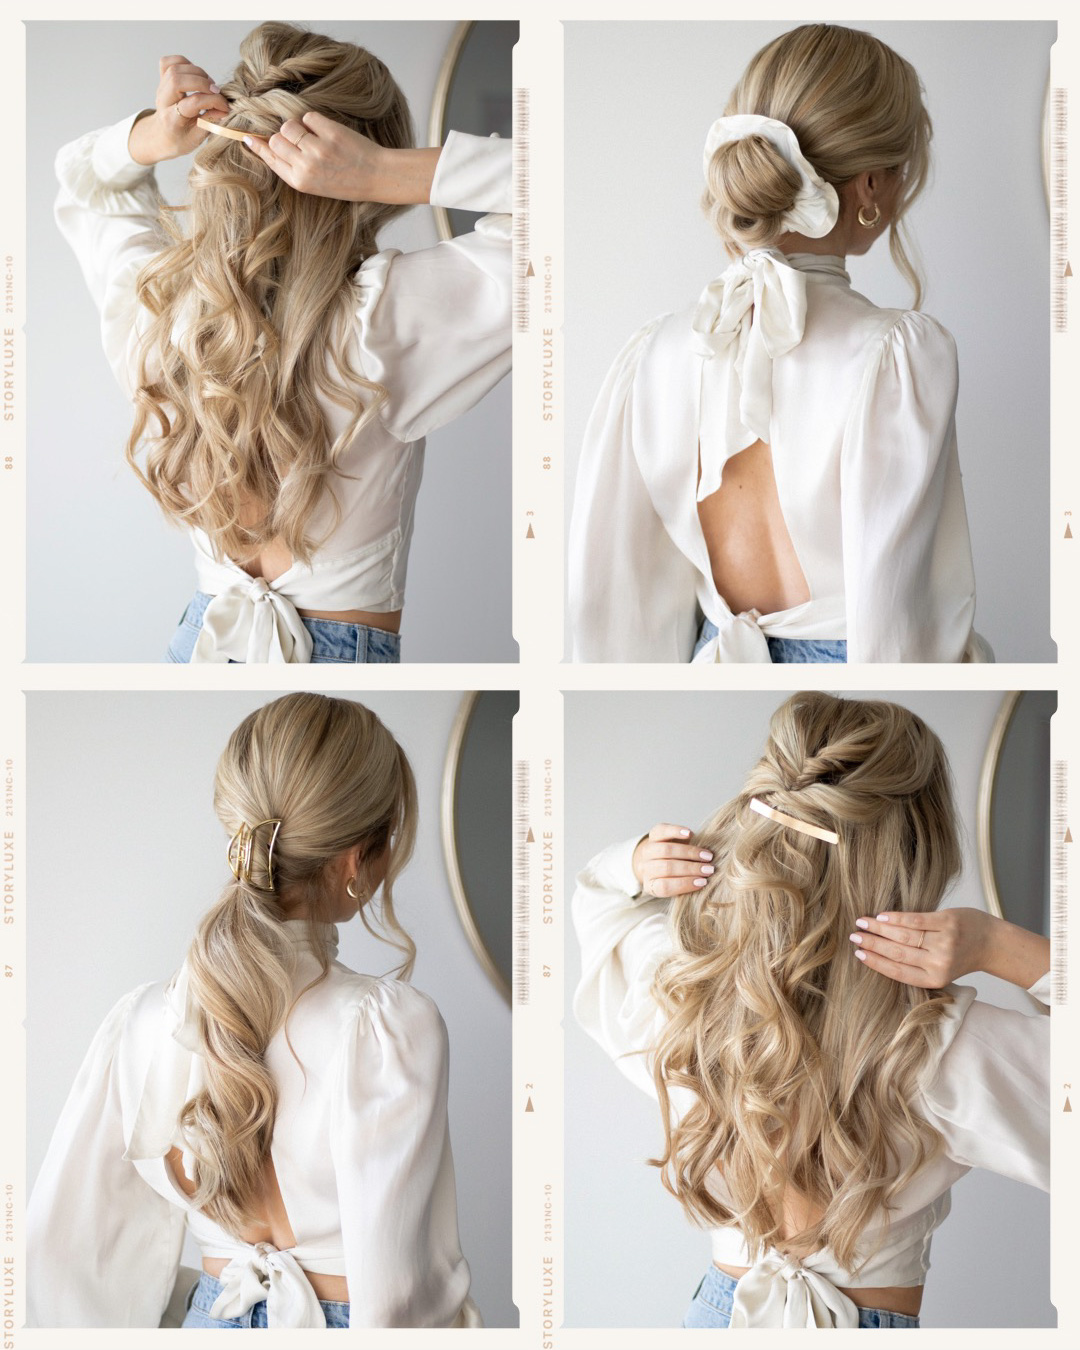 HOW TO: EASY HAIRSTYLES FOR 2020 | www.alexgaboury.com